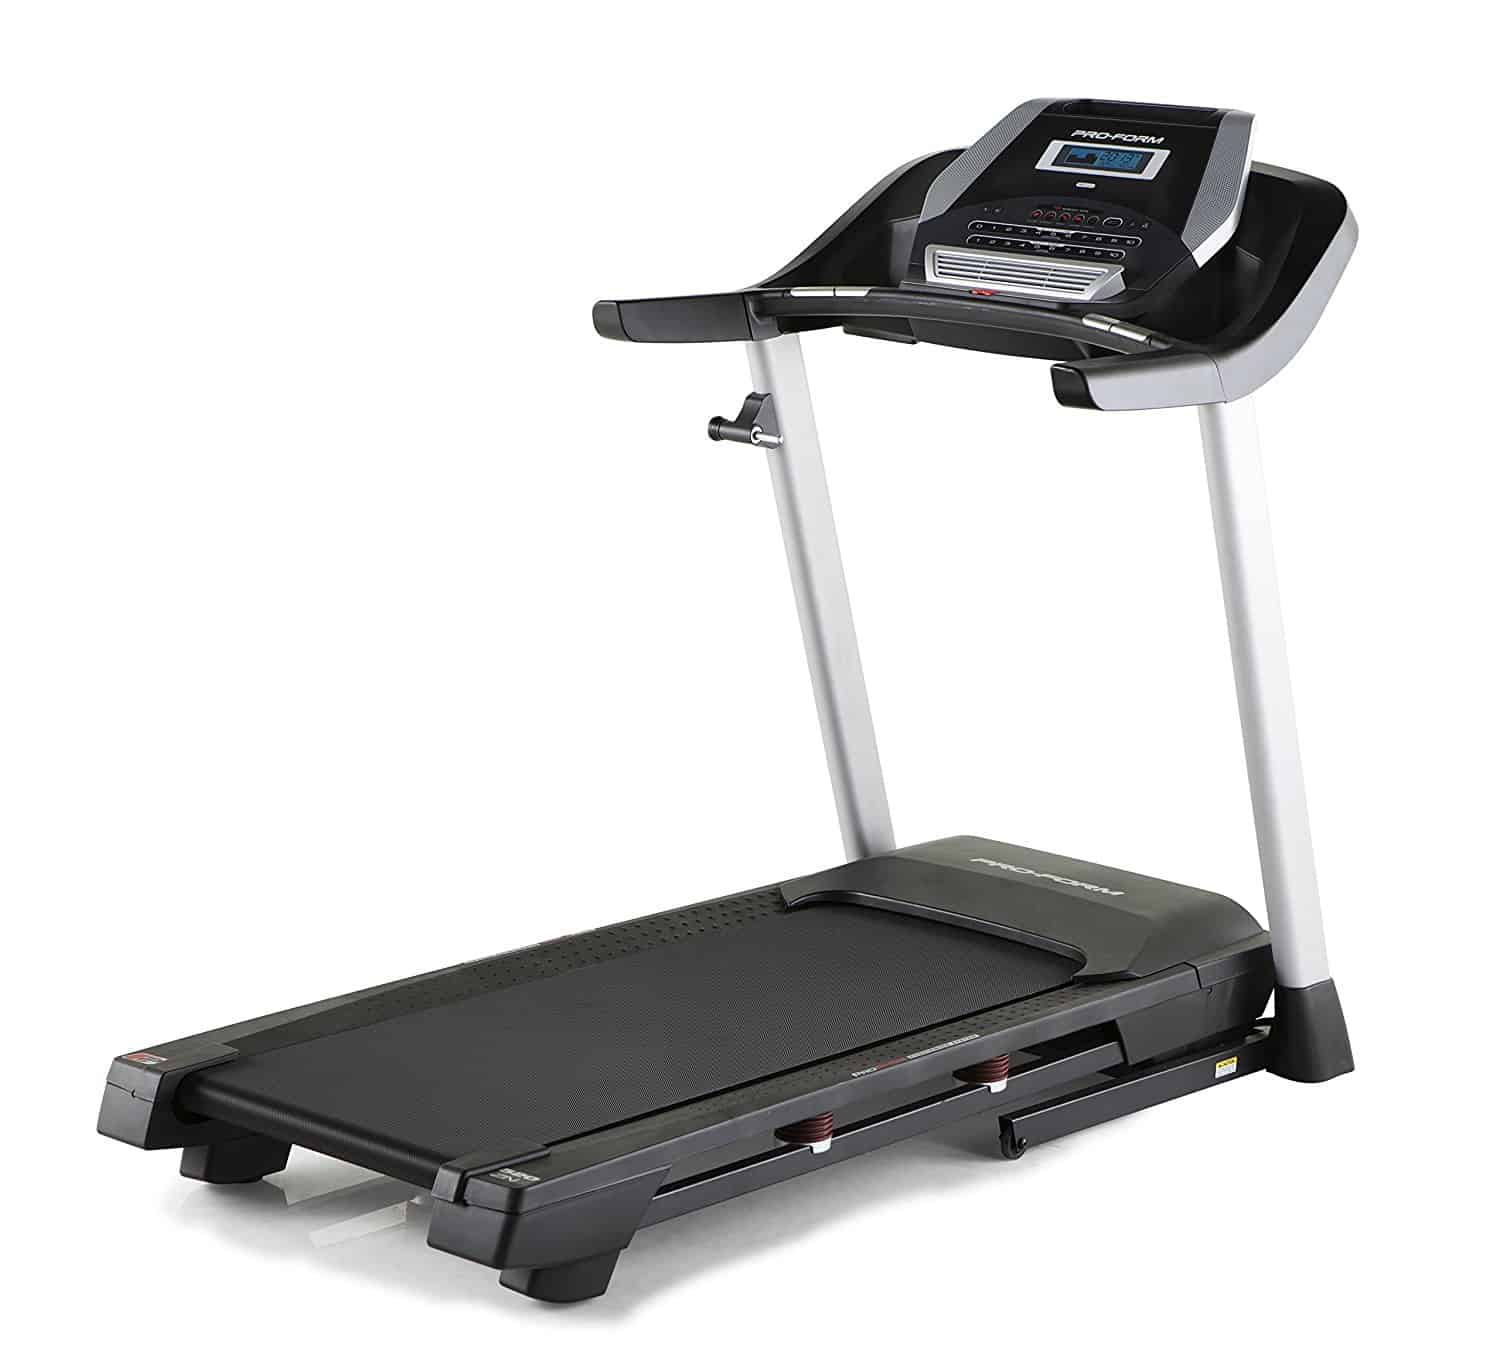 Proform 520 Zn Treadmill Buyer Guide Peak Health Pro